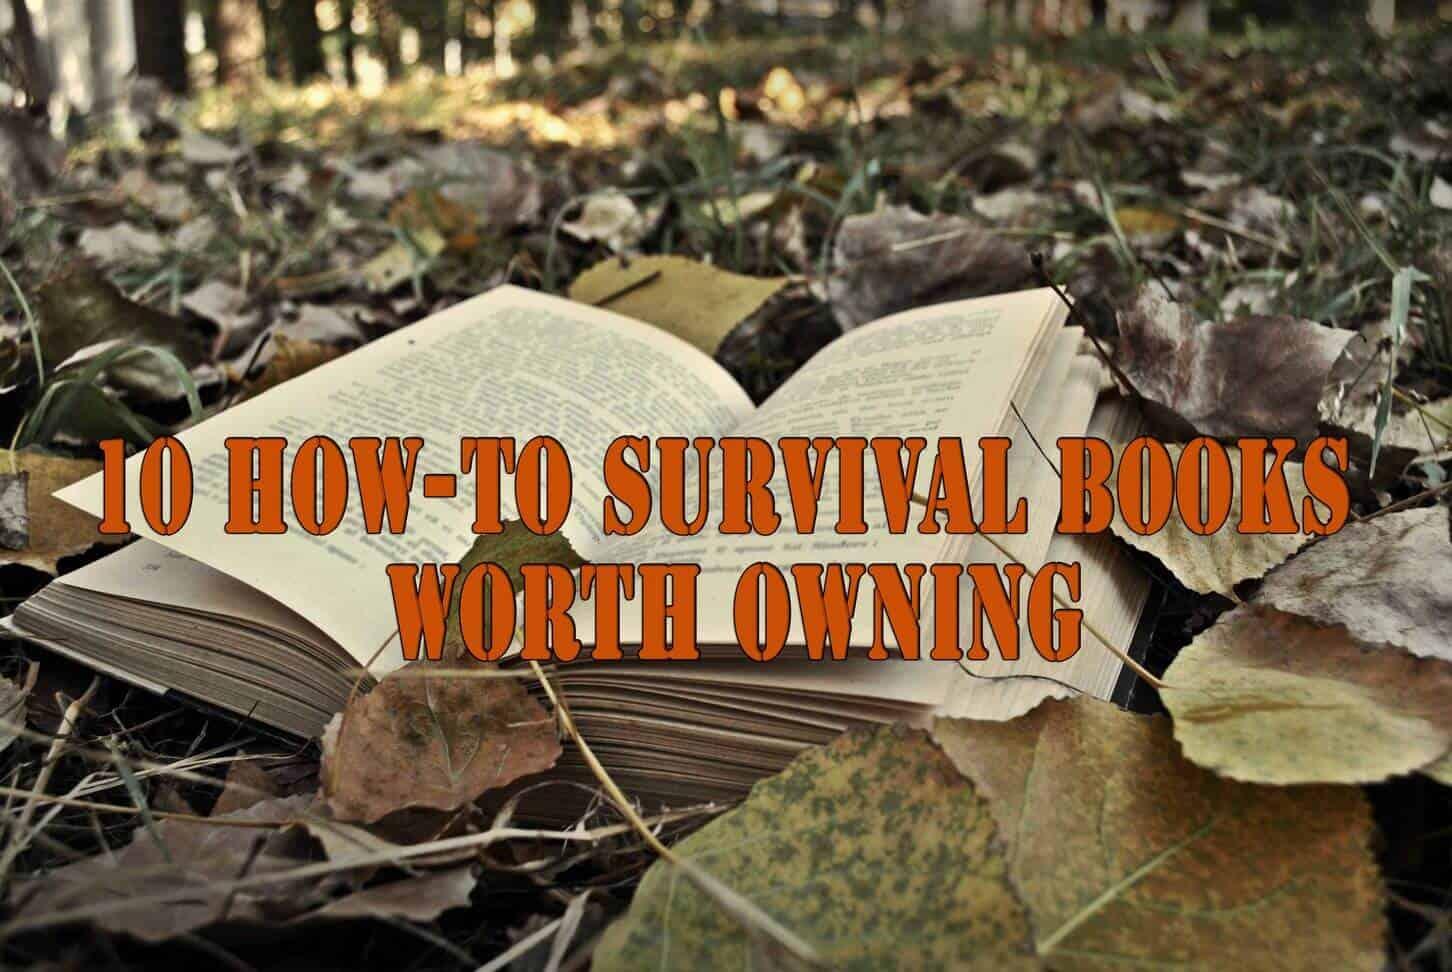 10-How-To-Survival-Books-Worth-Owning.jp